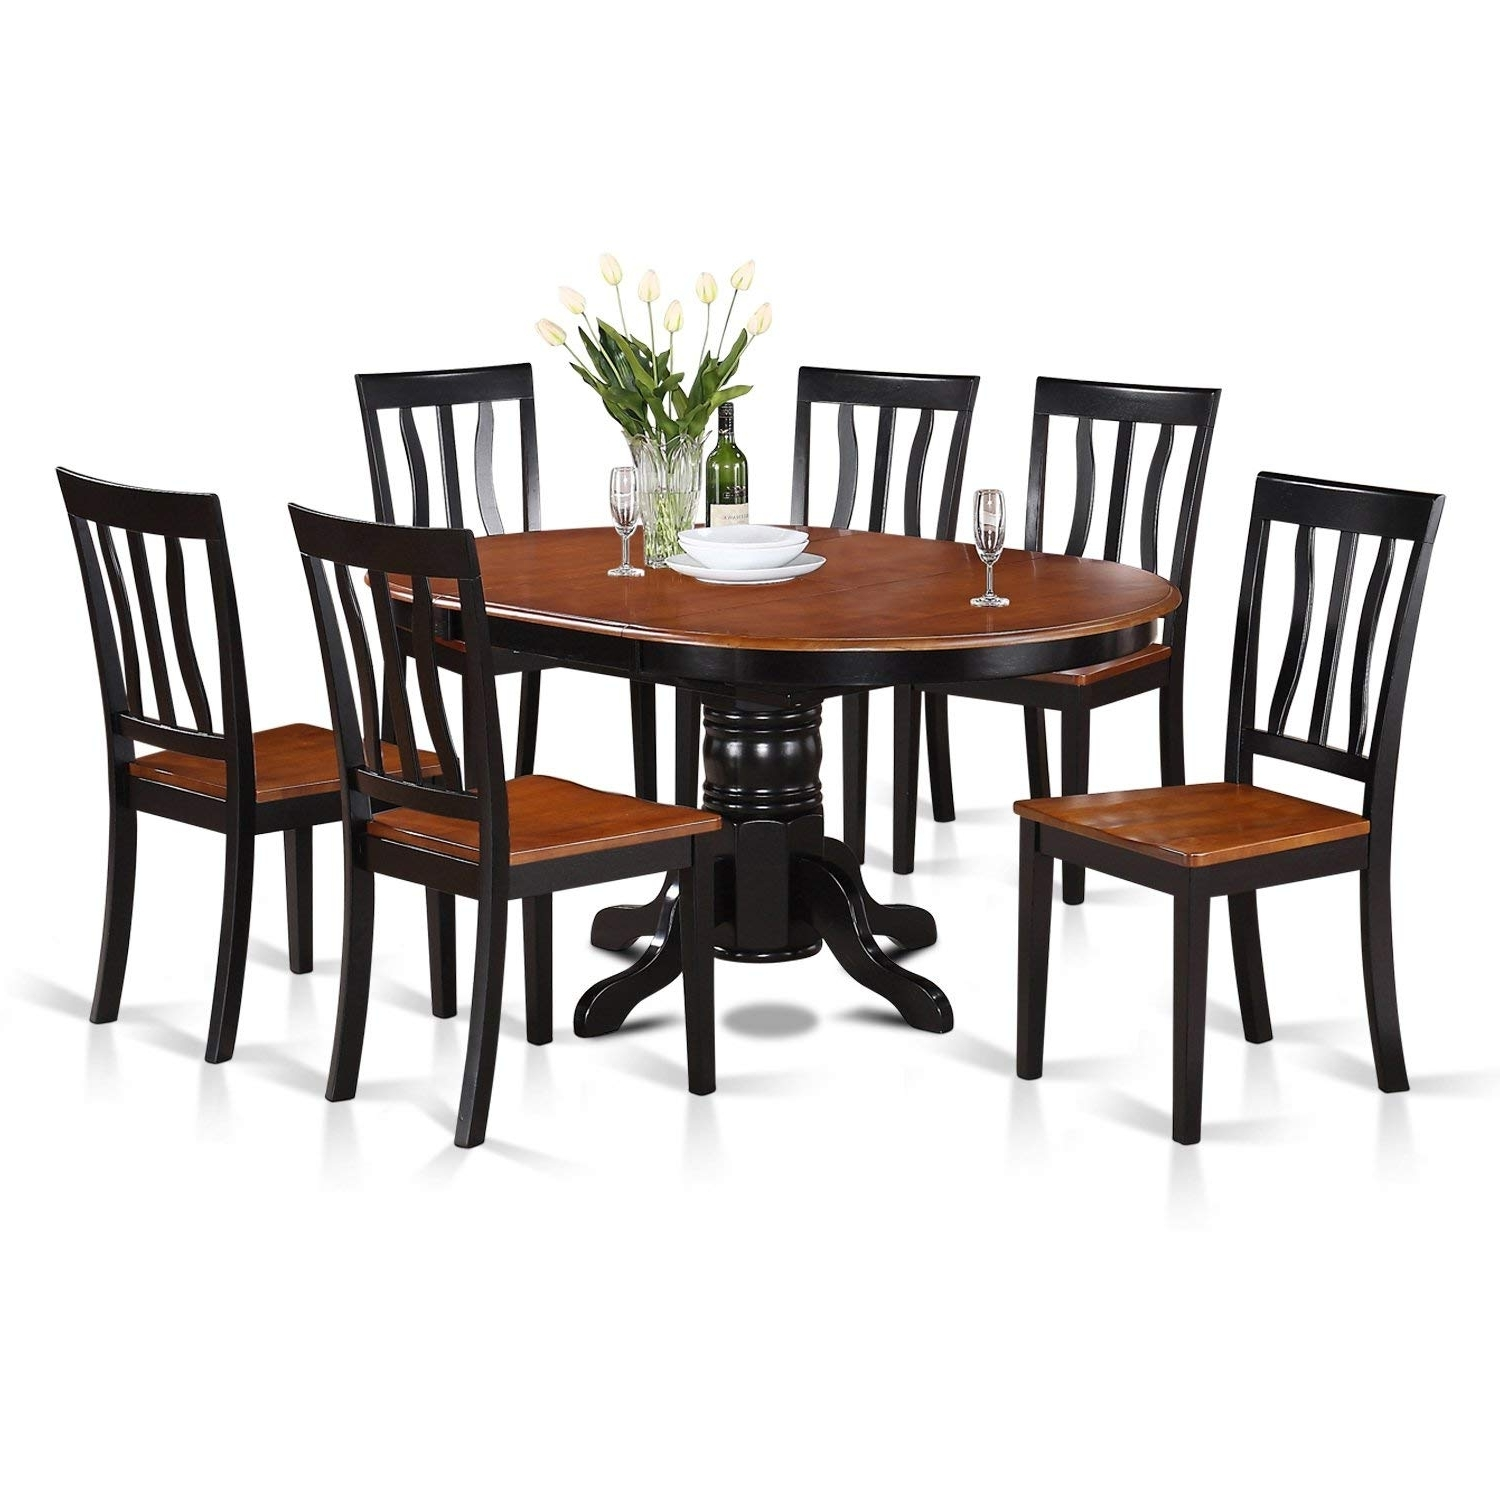 Jaxon 7 Piece Rectangle Dining Sets With Wood Chairs With Regard To Well Liked Amazon: East West Furniture Avat7 Blk W 7 Piece Dining Table Set (View 13 of 25)